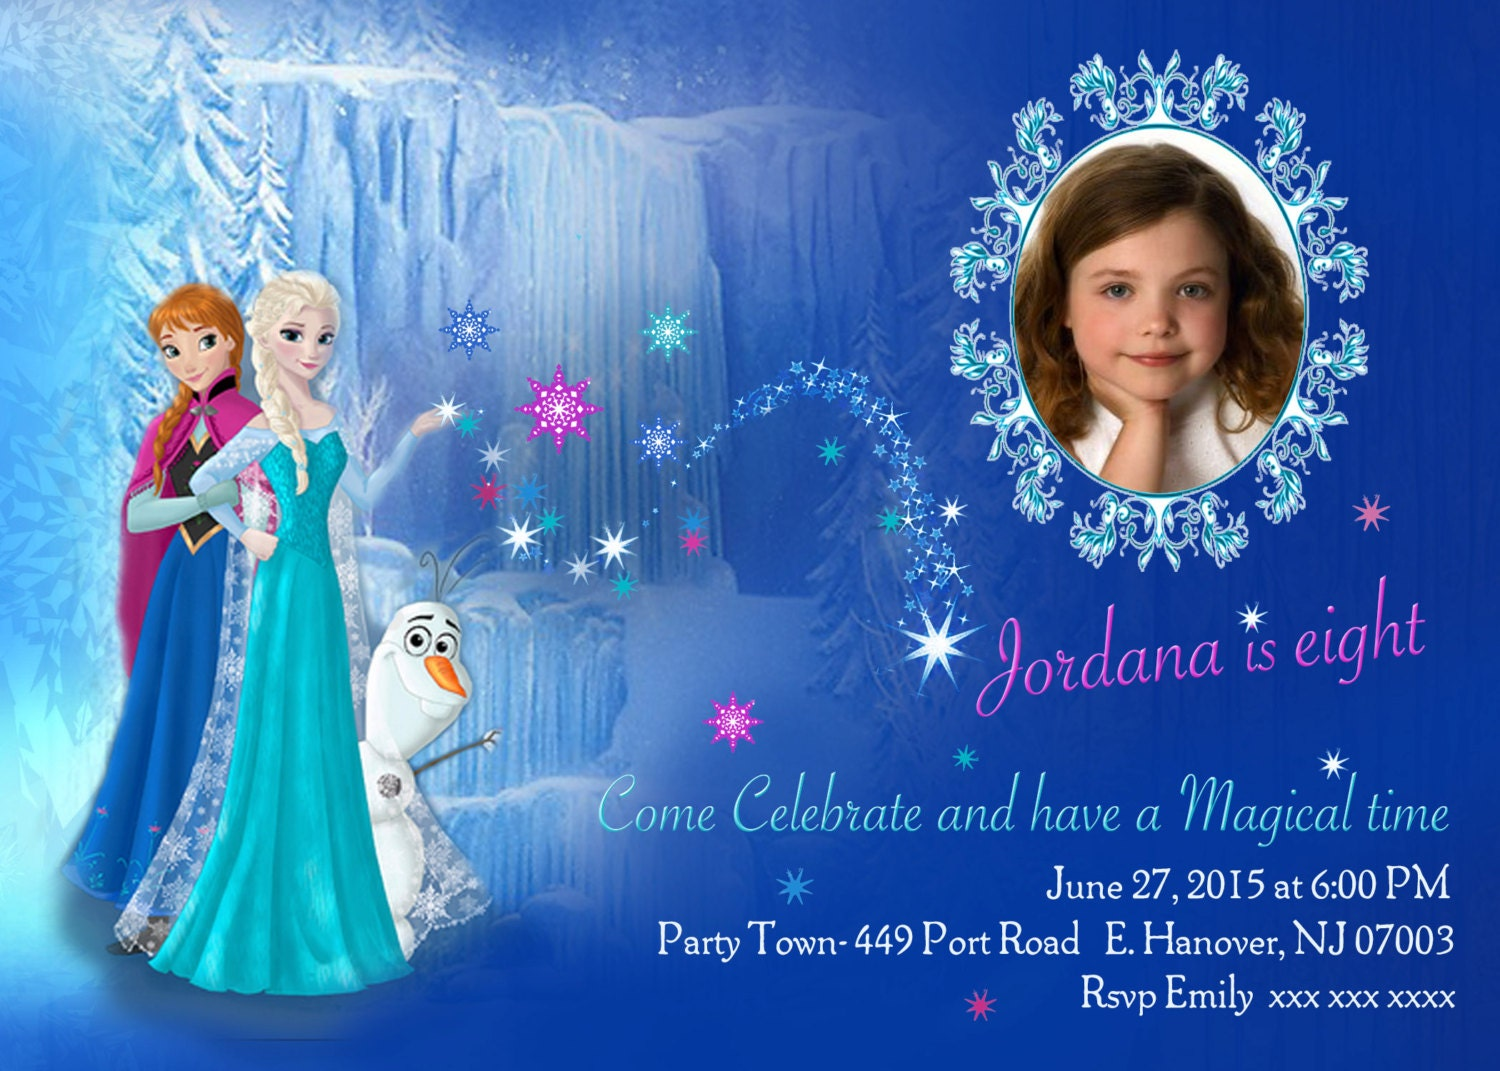 Awesome Frozen Birthday Invitation Template Pictures Inspiration - Party invitation template: frozen birthday party invitation template